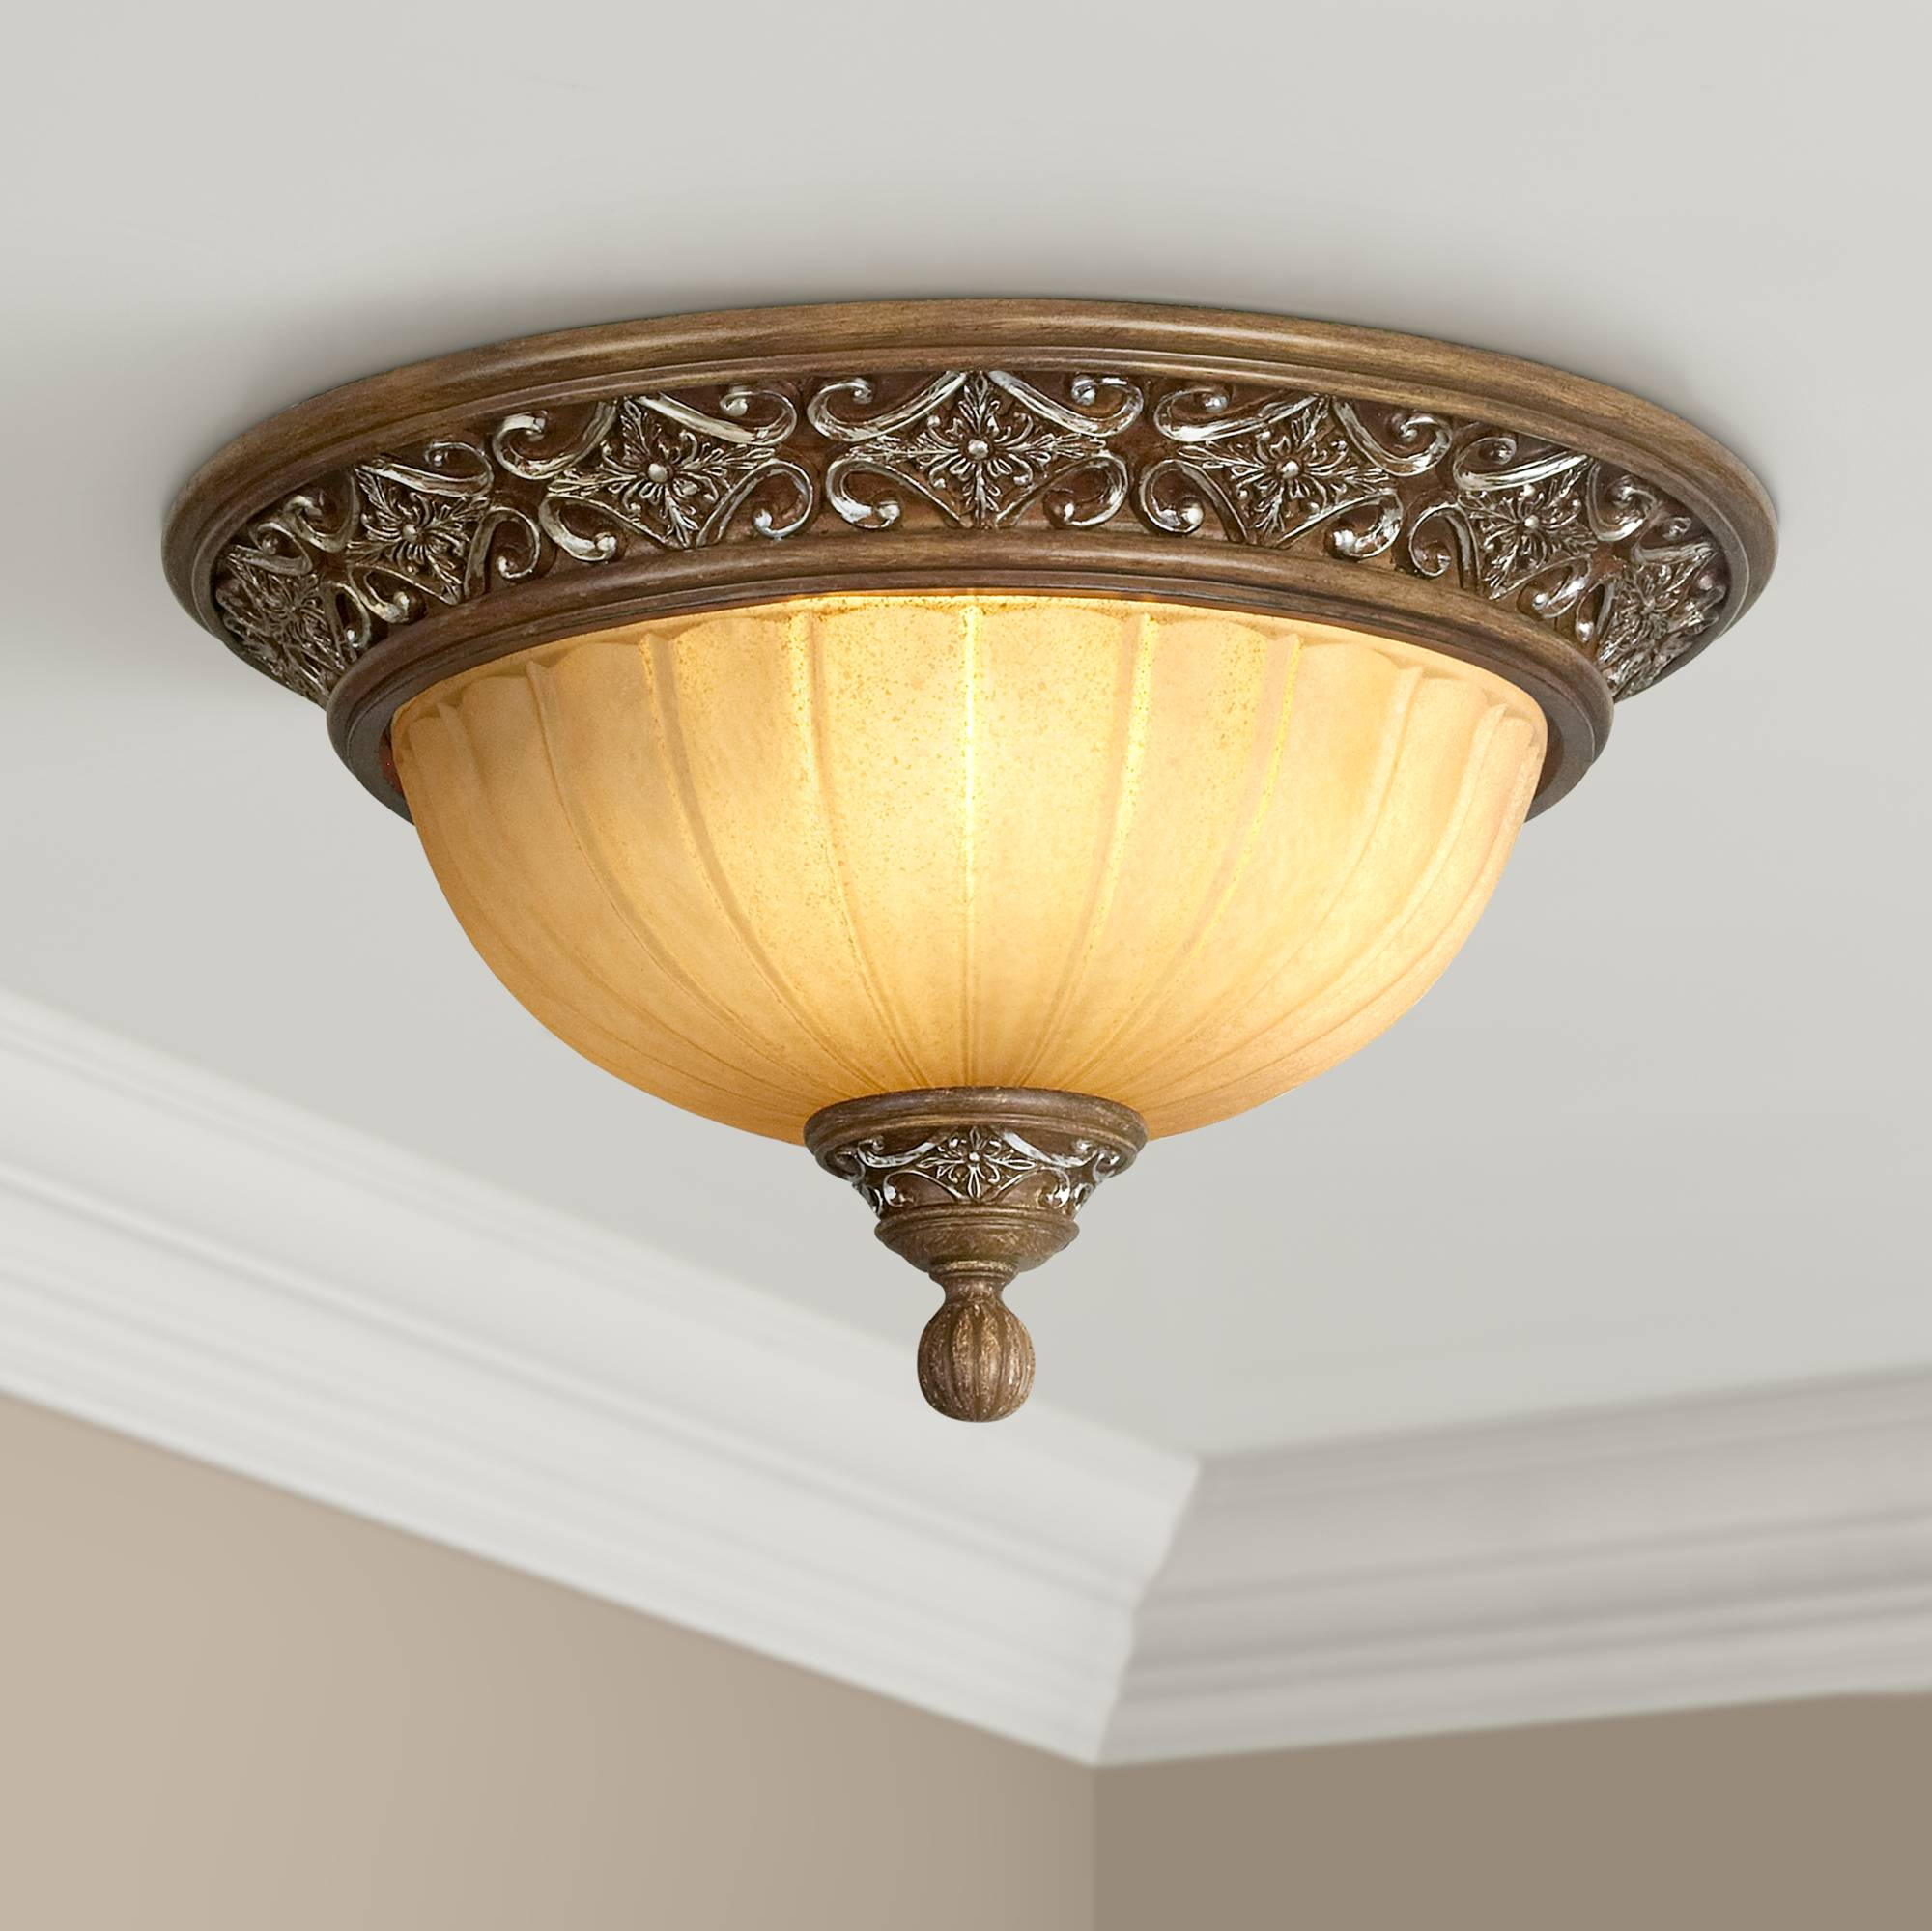 Details About Kathy Ireland Sterling Estate 14 Wide Ceiling Light Fixture